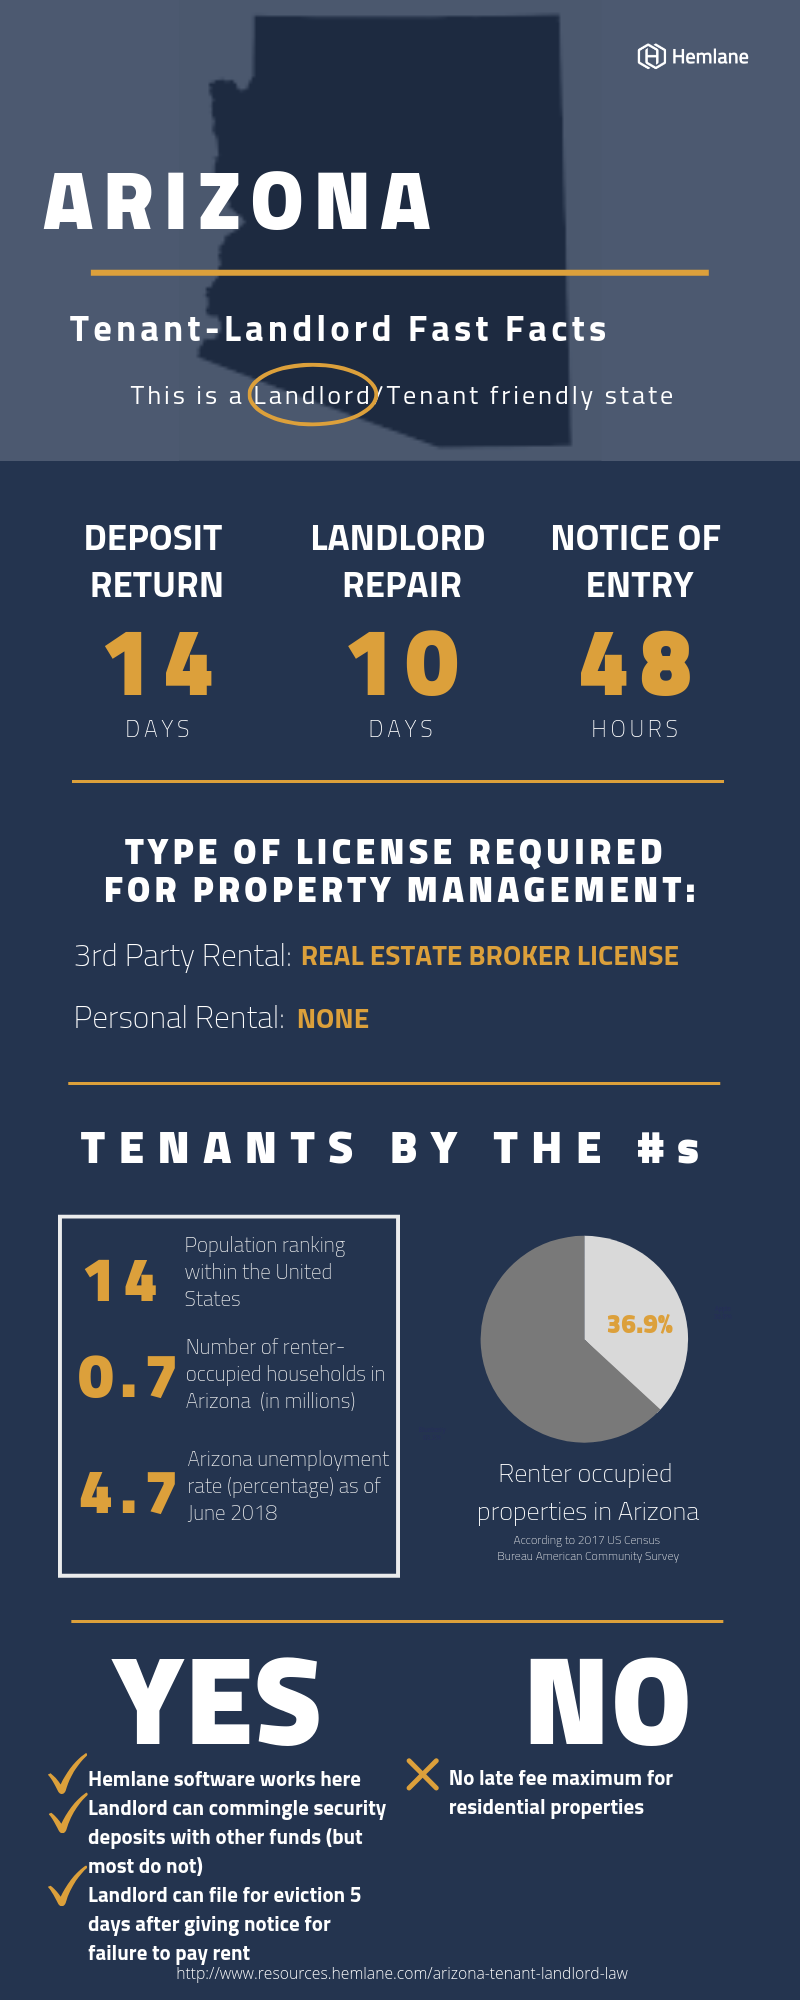 Arizona-Landlord-Tenant-Law-Fast-Facts